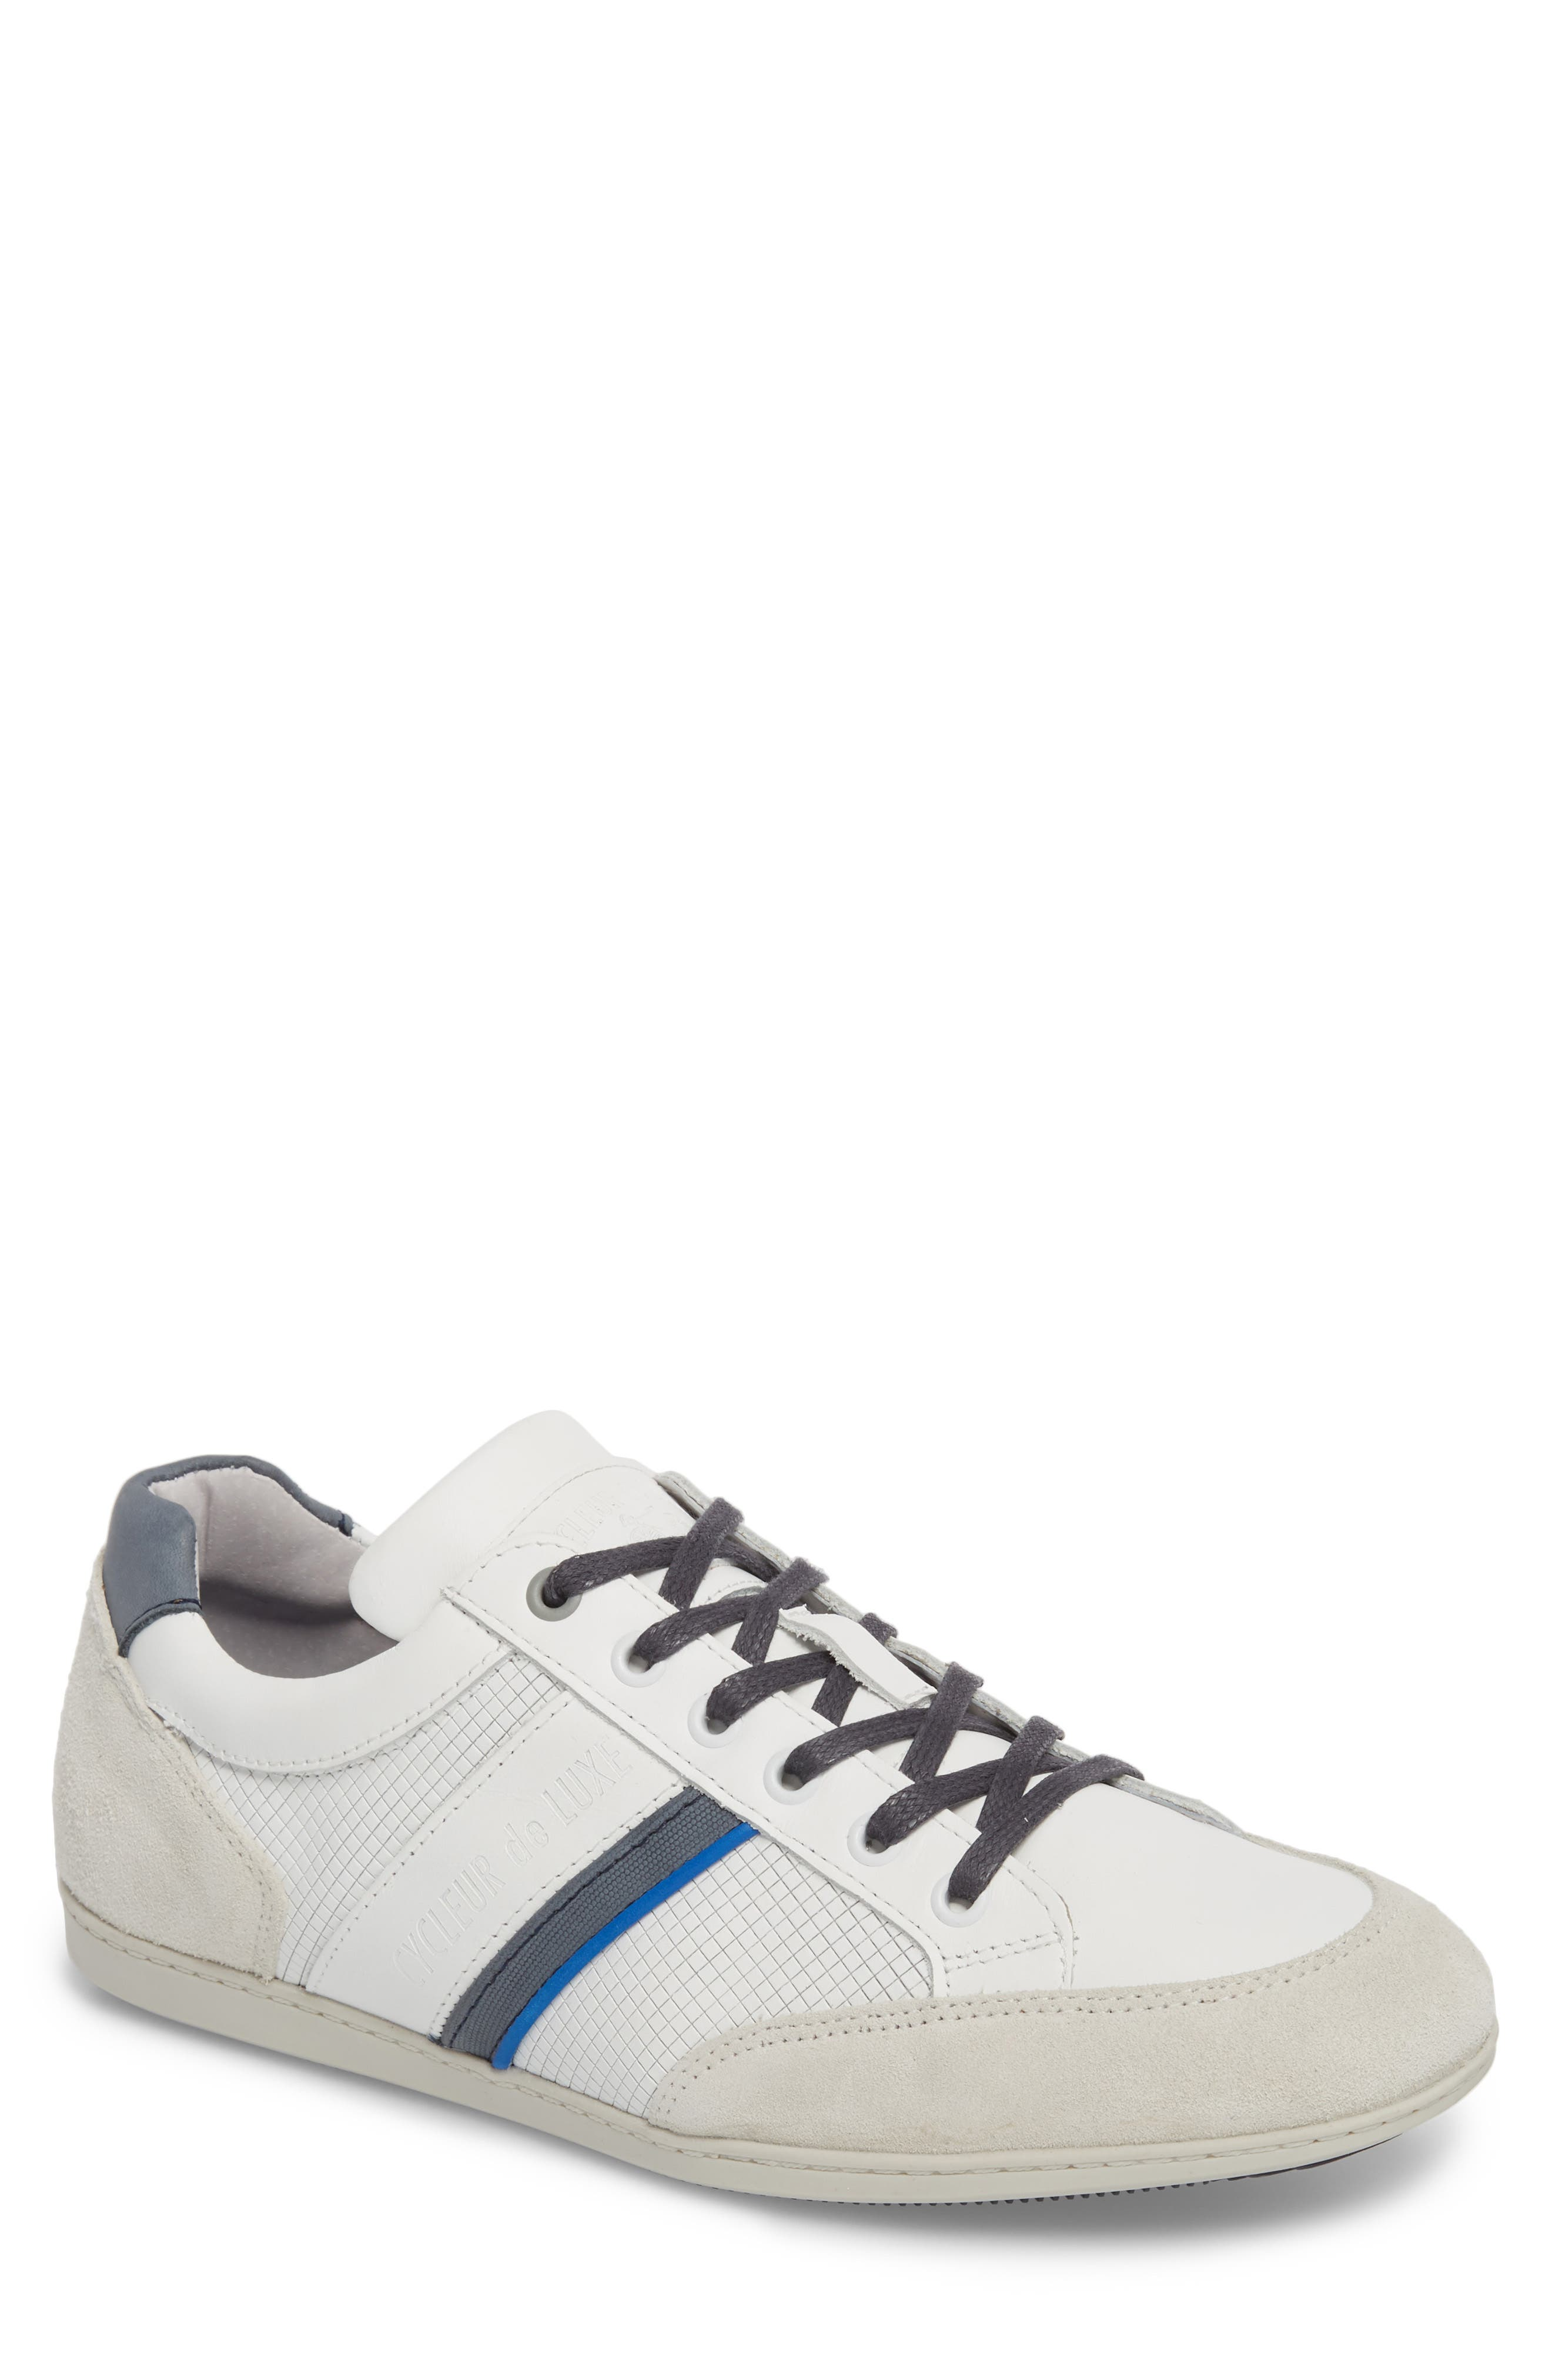 Bahamas Low Top Sneaker,                             Main thumbnail 1, color,                             Off White/ Navy Leather